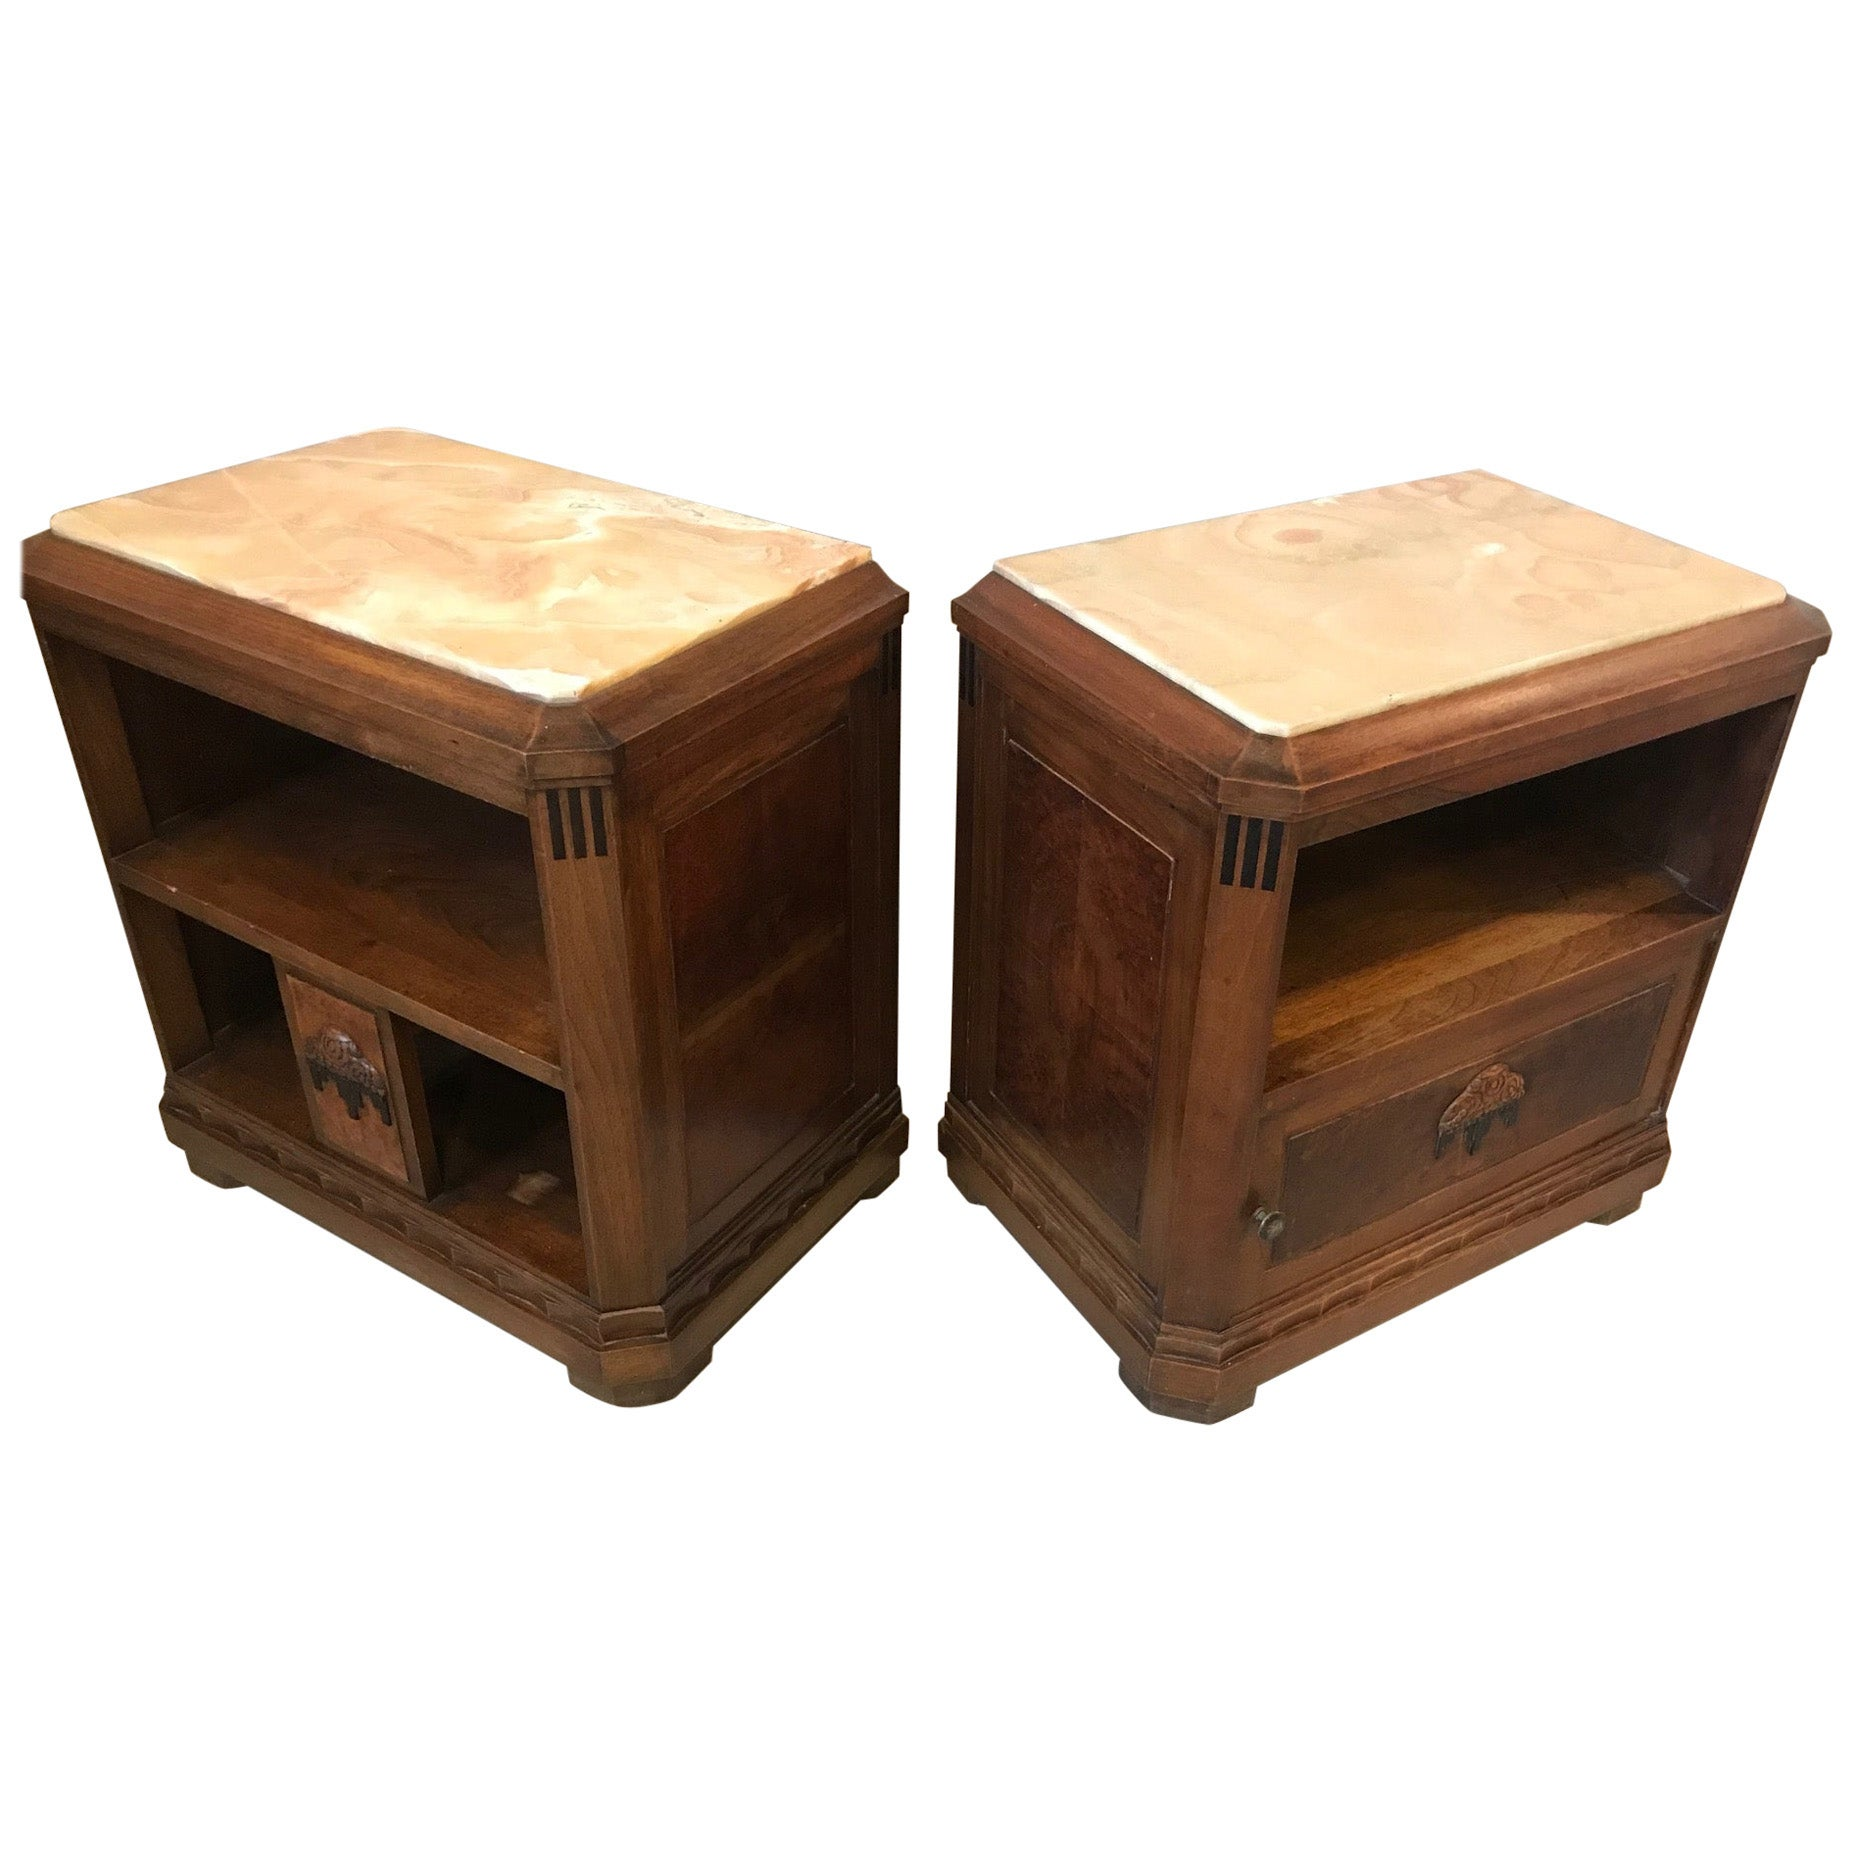 20th Century French Art Deco Pair of Bedside Table, 1930s